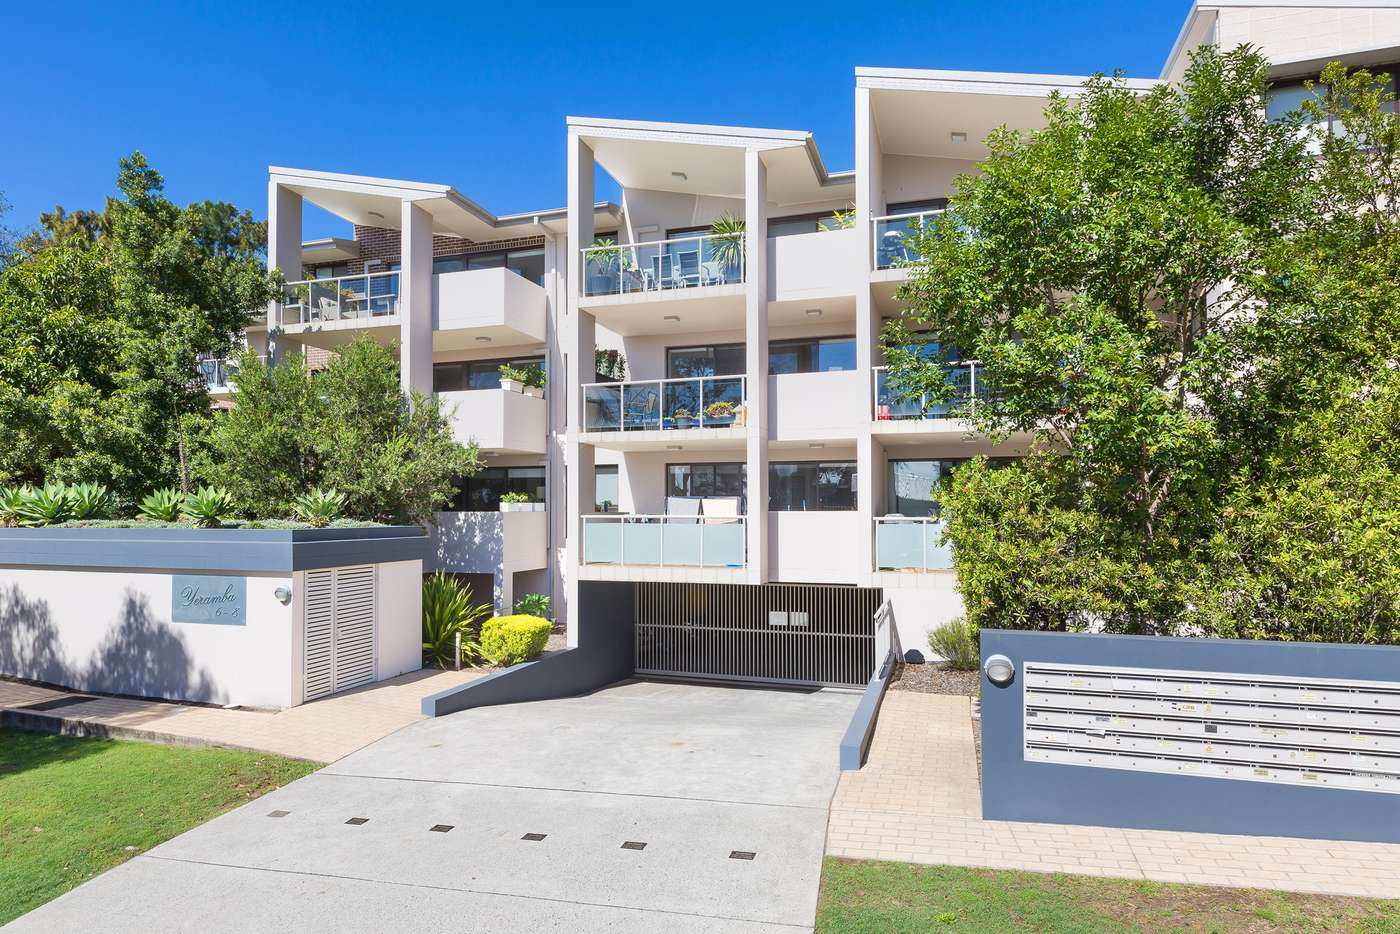 Main view of Homely apartment listing, 31/6-8 Banksia Road, Caringbah NSW 2229